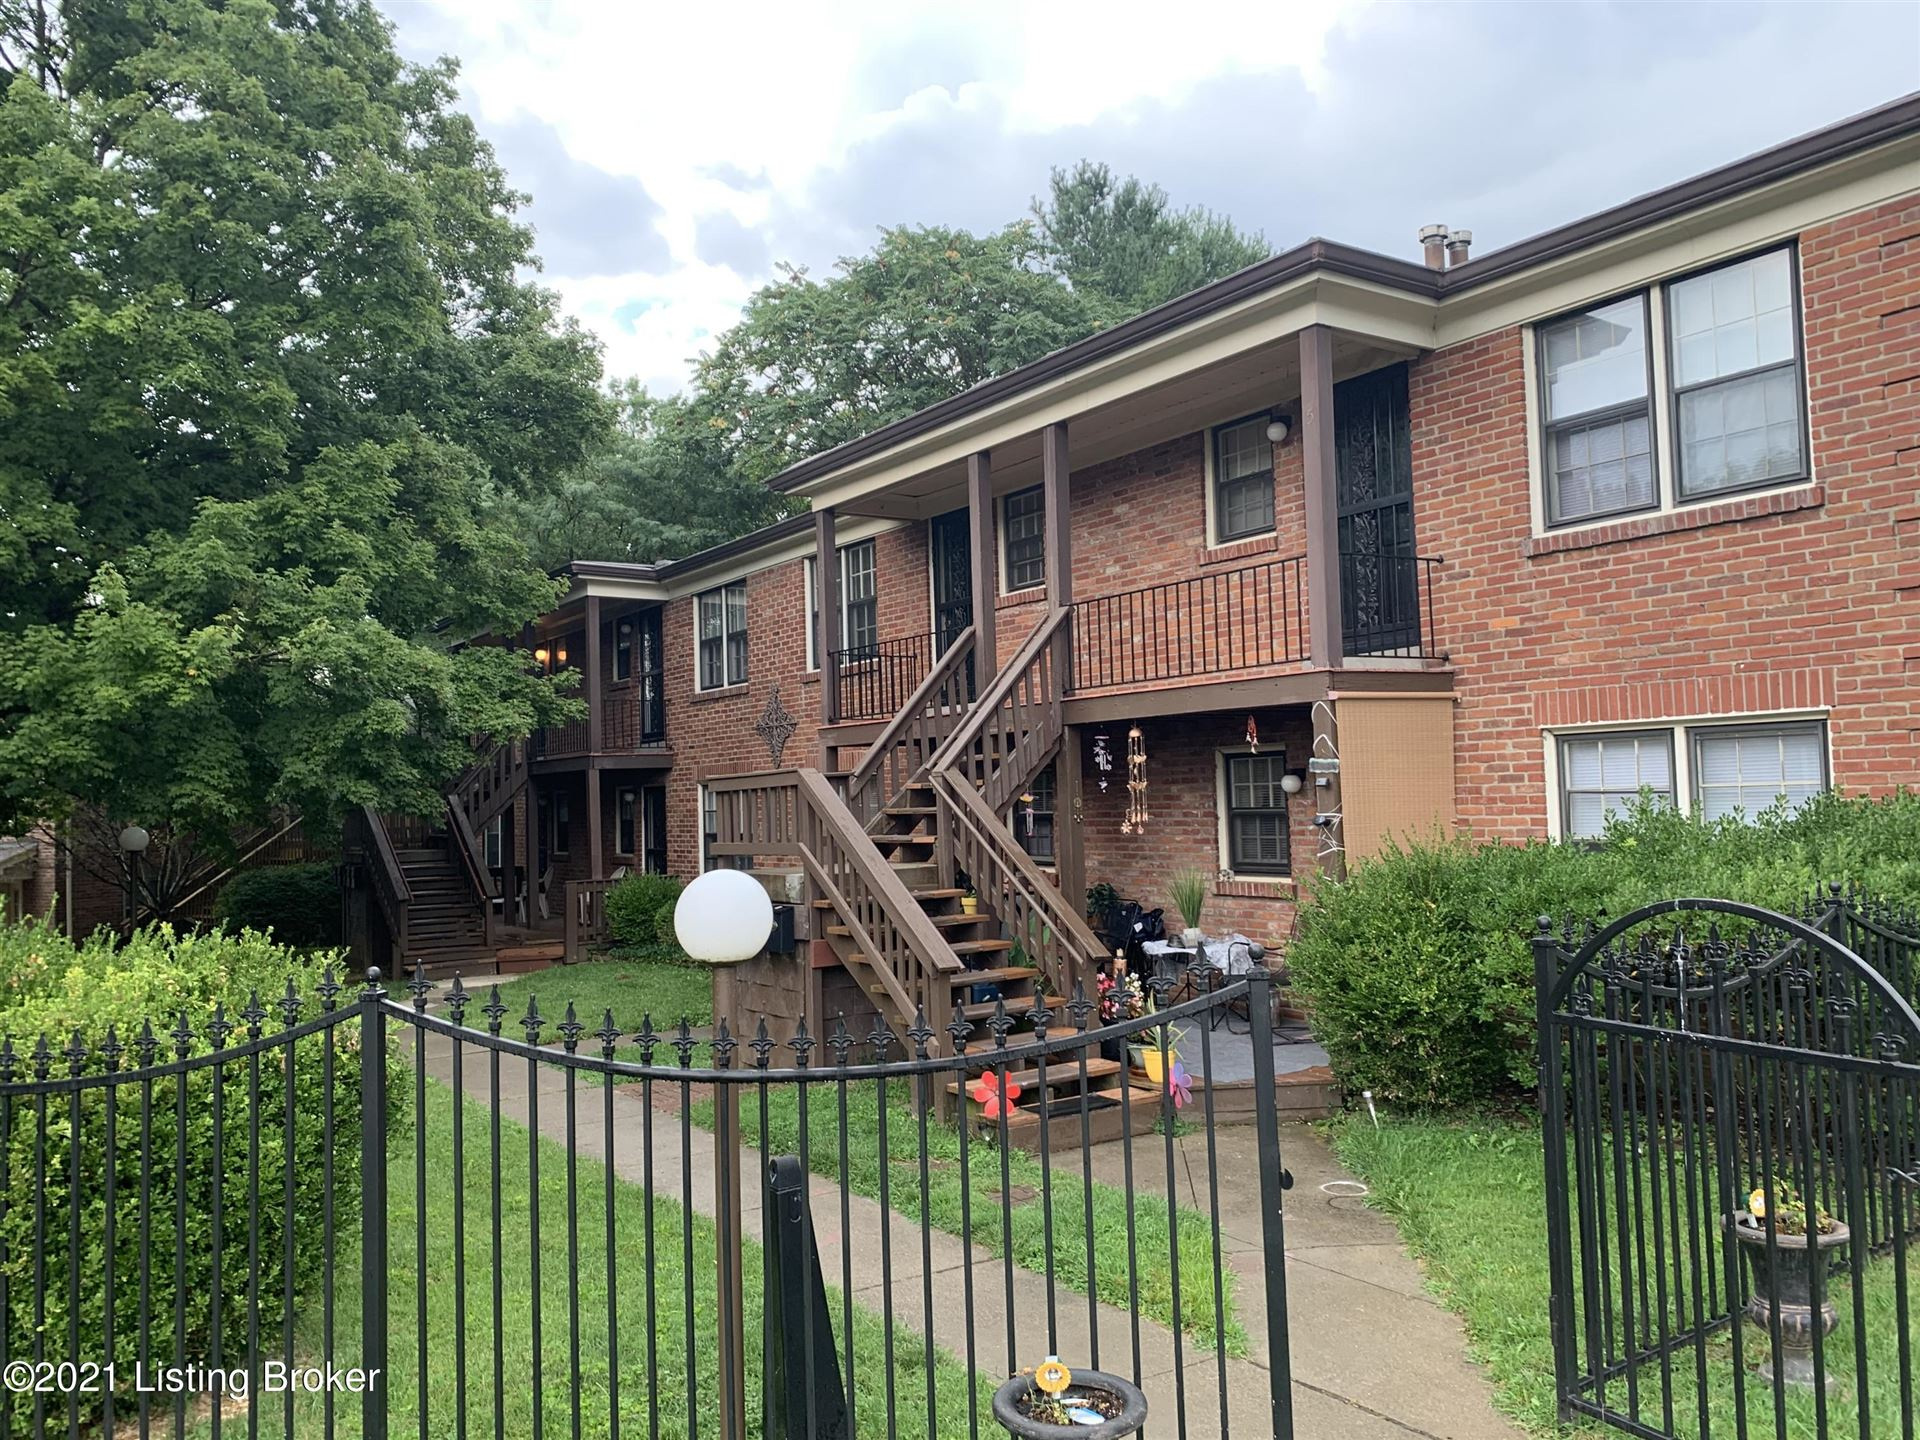 Photo for 2707 Riedling Dr #A3, Louisville, KY 40206 (MLS # 1586763)